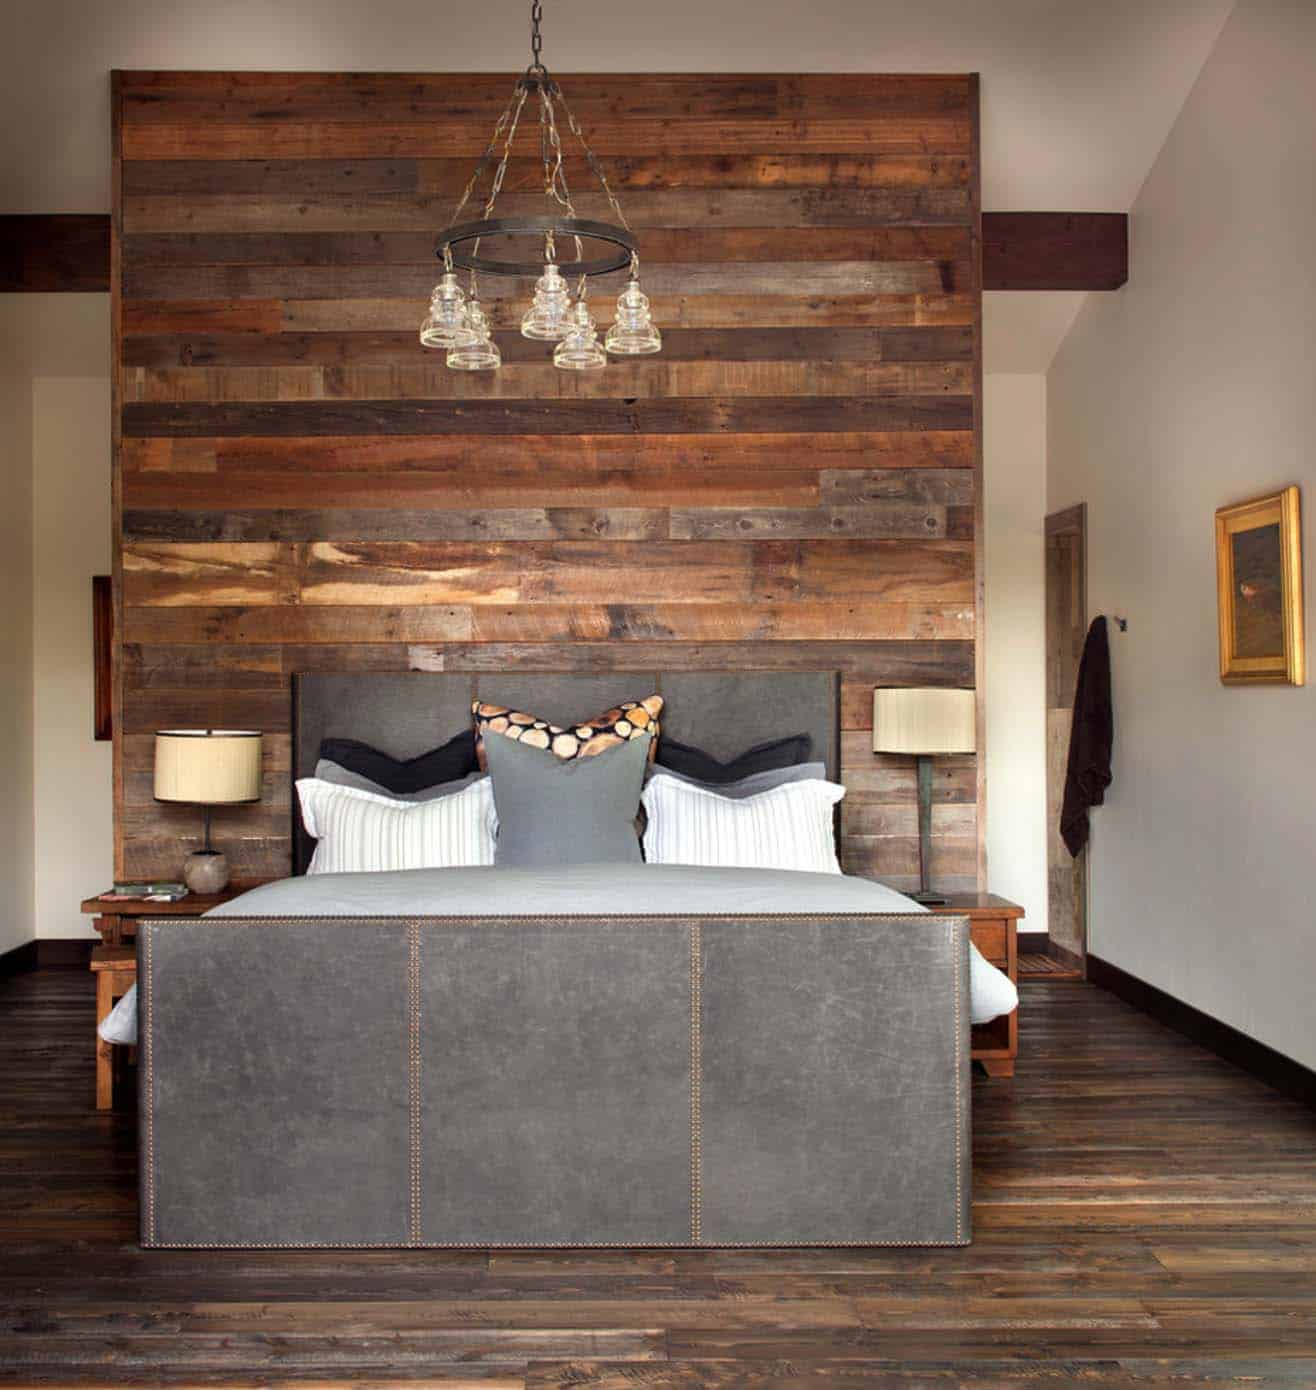 Modern Classic And Rustic Bedrooms: Rustic-modern Dwelling Nestled In The Northern Rocky Mountains